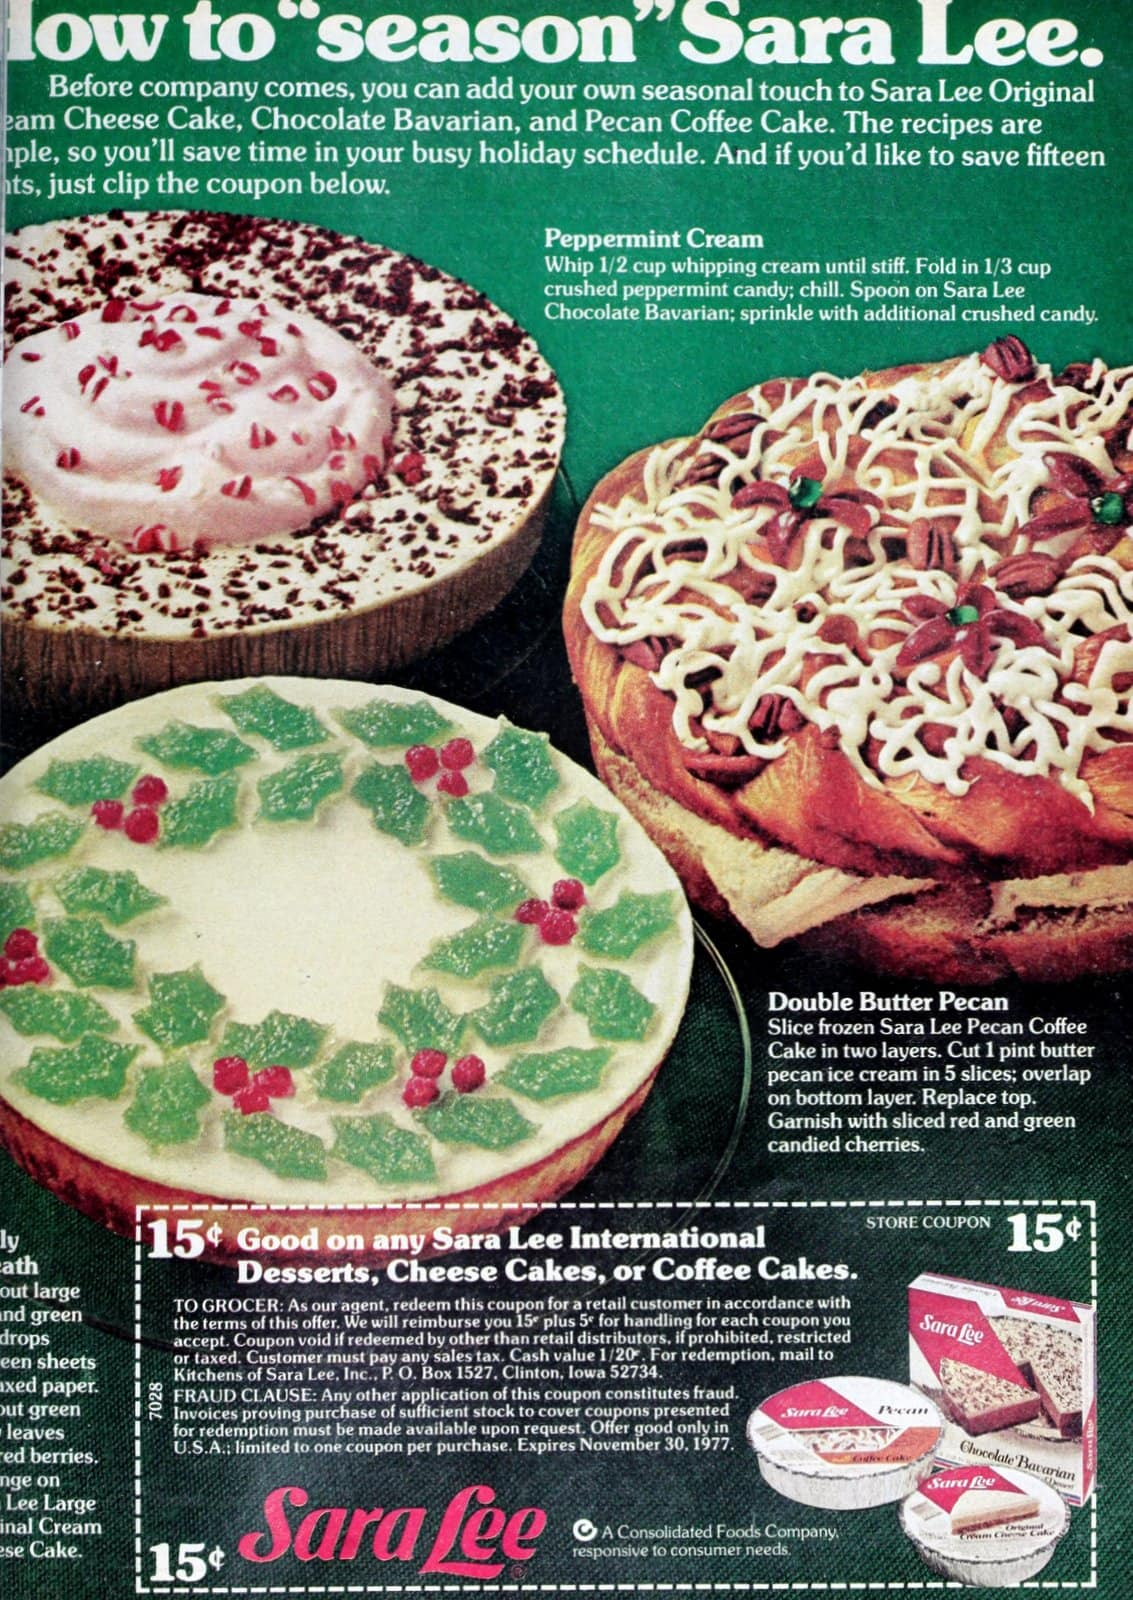 How to customize and decorate store-bought round cakes and cheesecakes (1976)